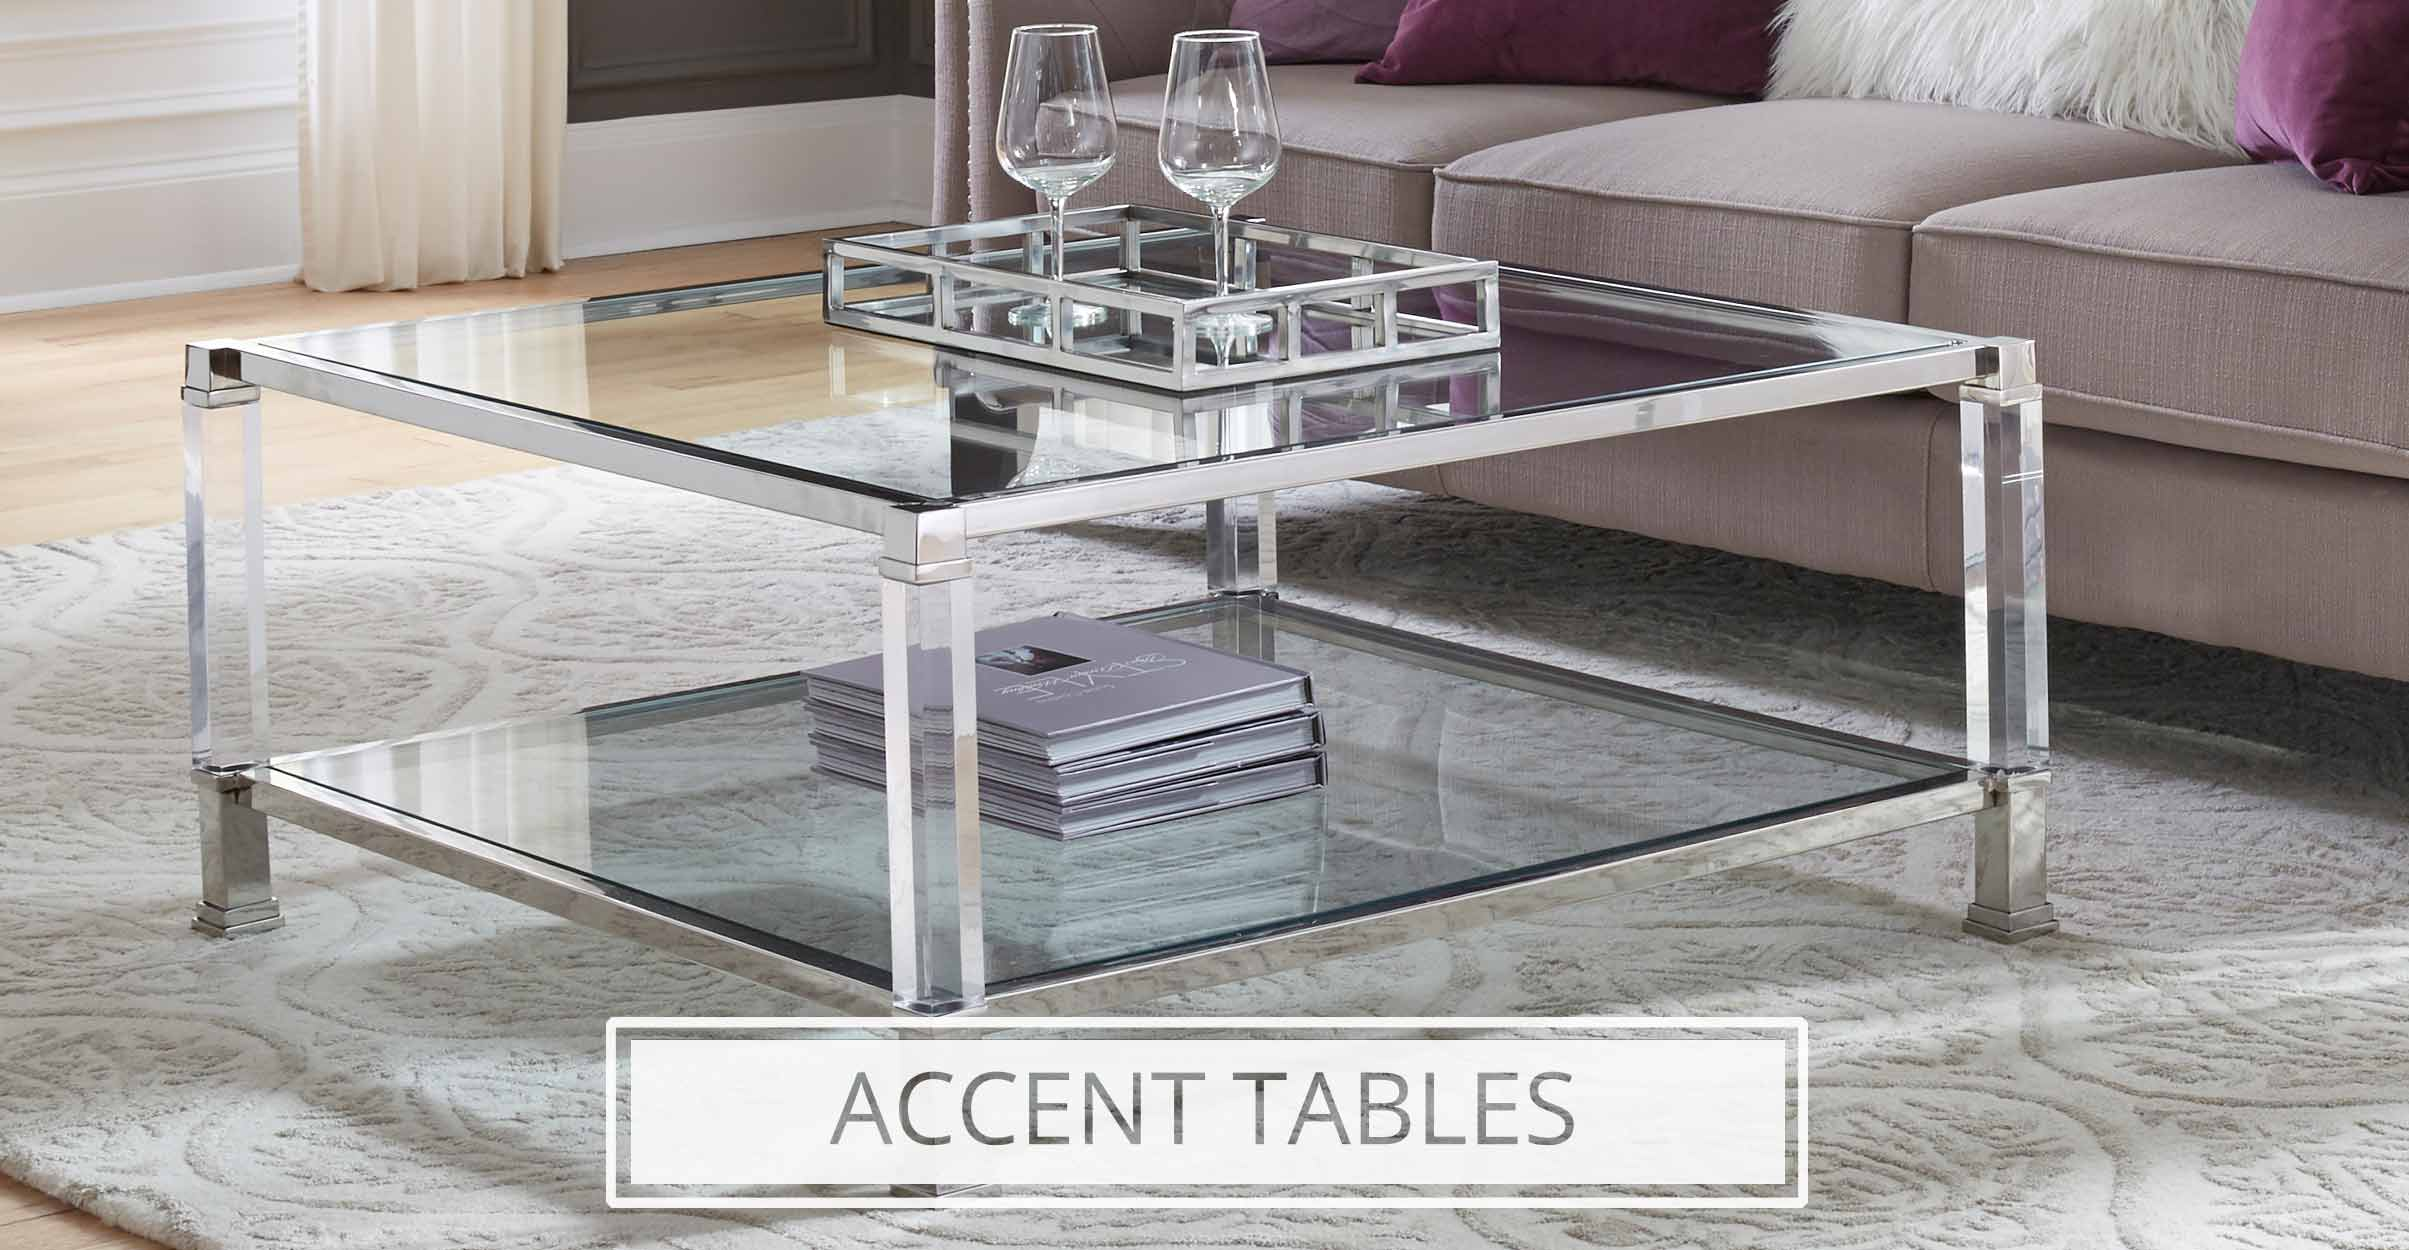 room table round centerpieces decor threshold accent ott tables farmh mini for small plus outdoor shades ideas and contemporary lamps tiffany living lighting top lamp target